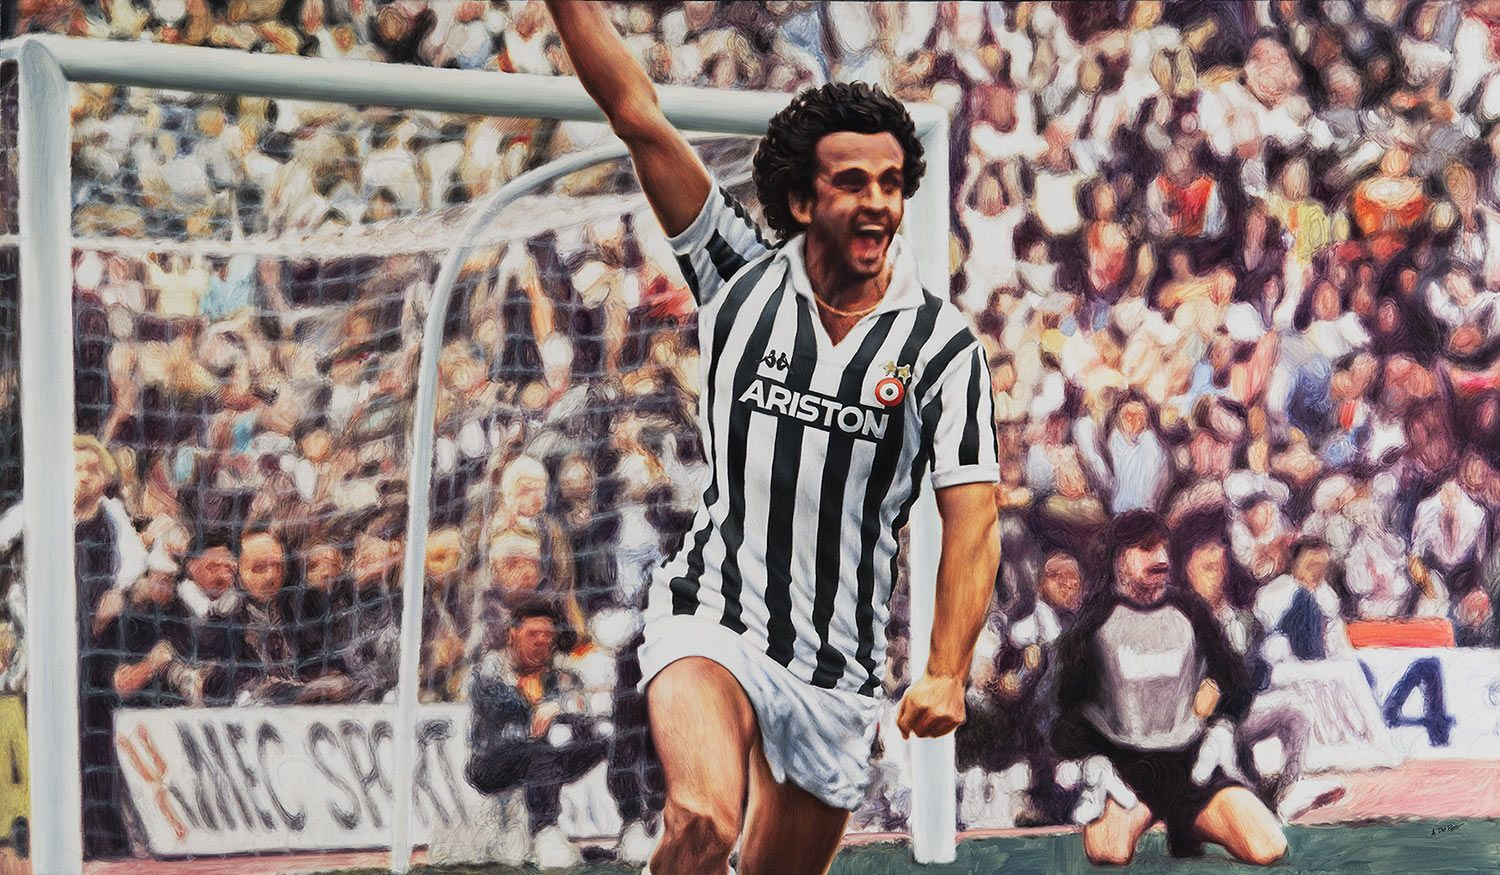 Torino 1983, Stadio Comunale: Michel Platini, Juventus F. C.  - Artwork by artist Andrea Del Pesco Oil painting on canvas, size cm. 120x70